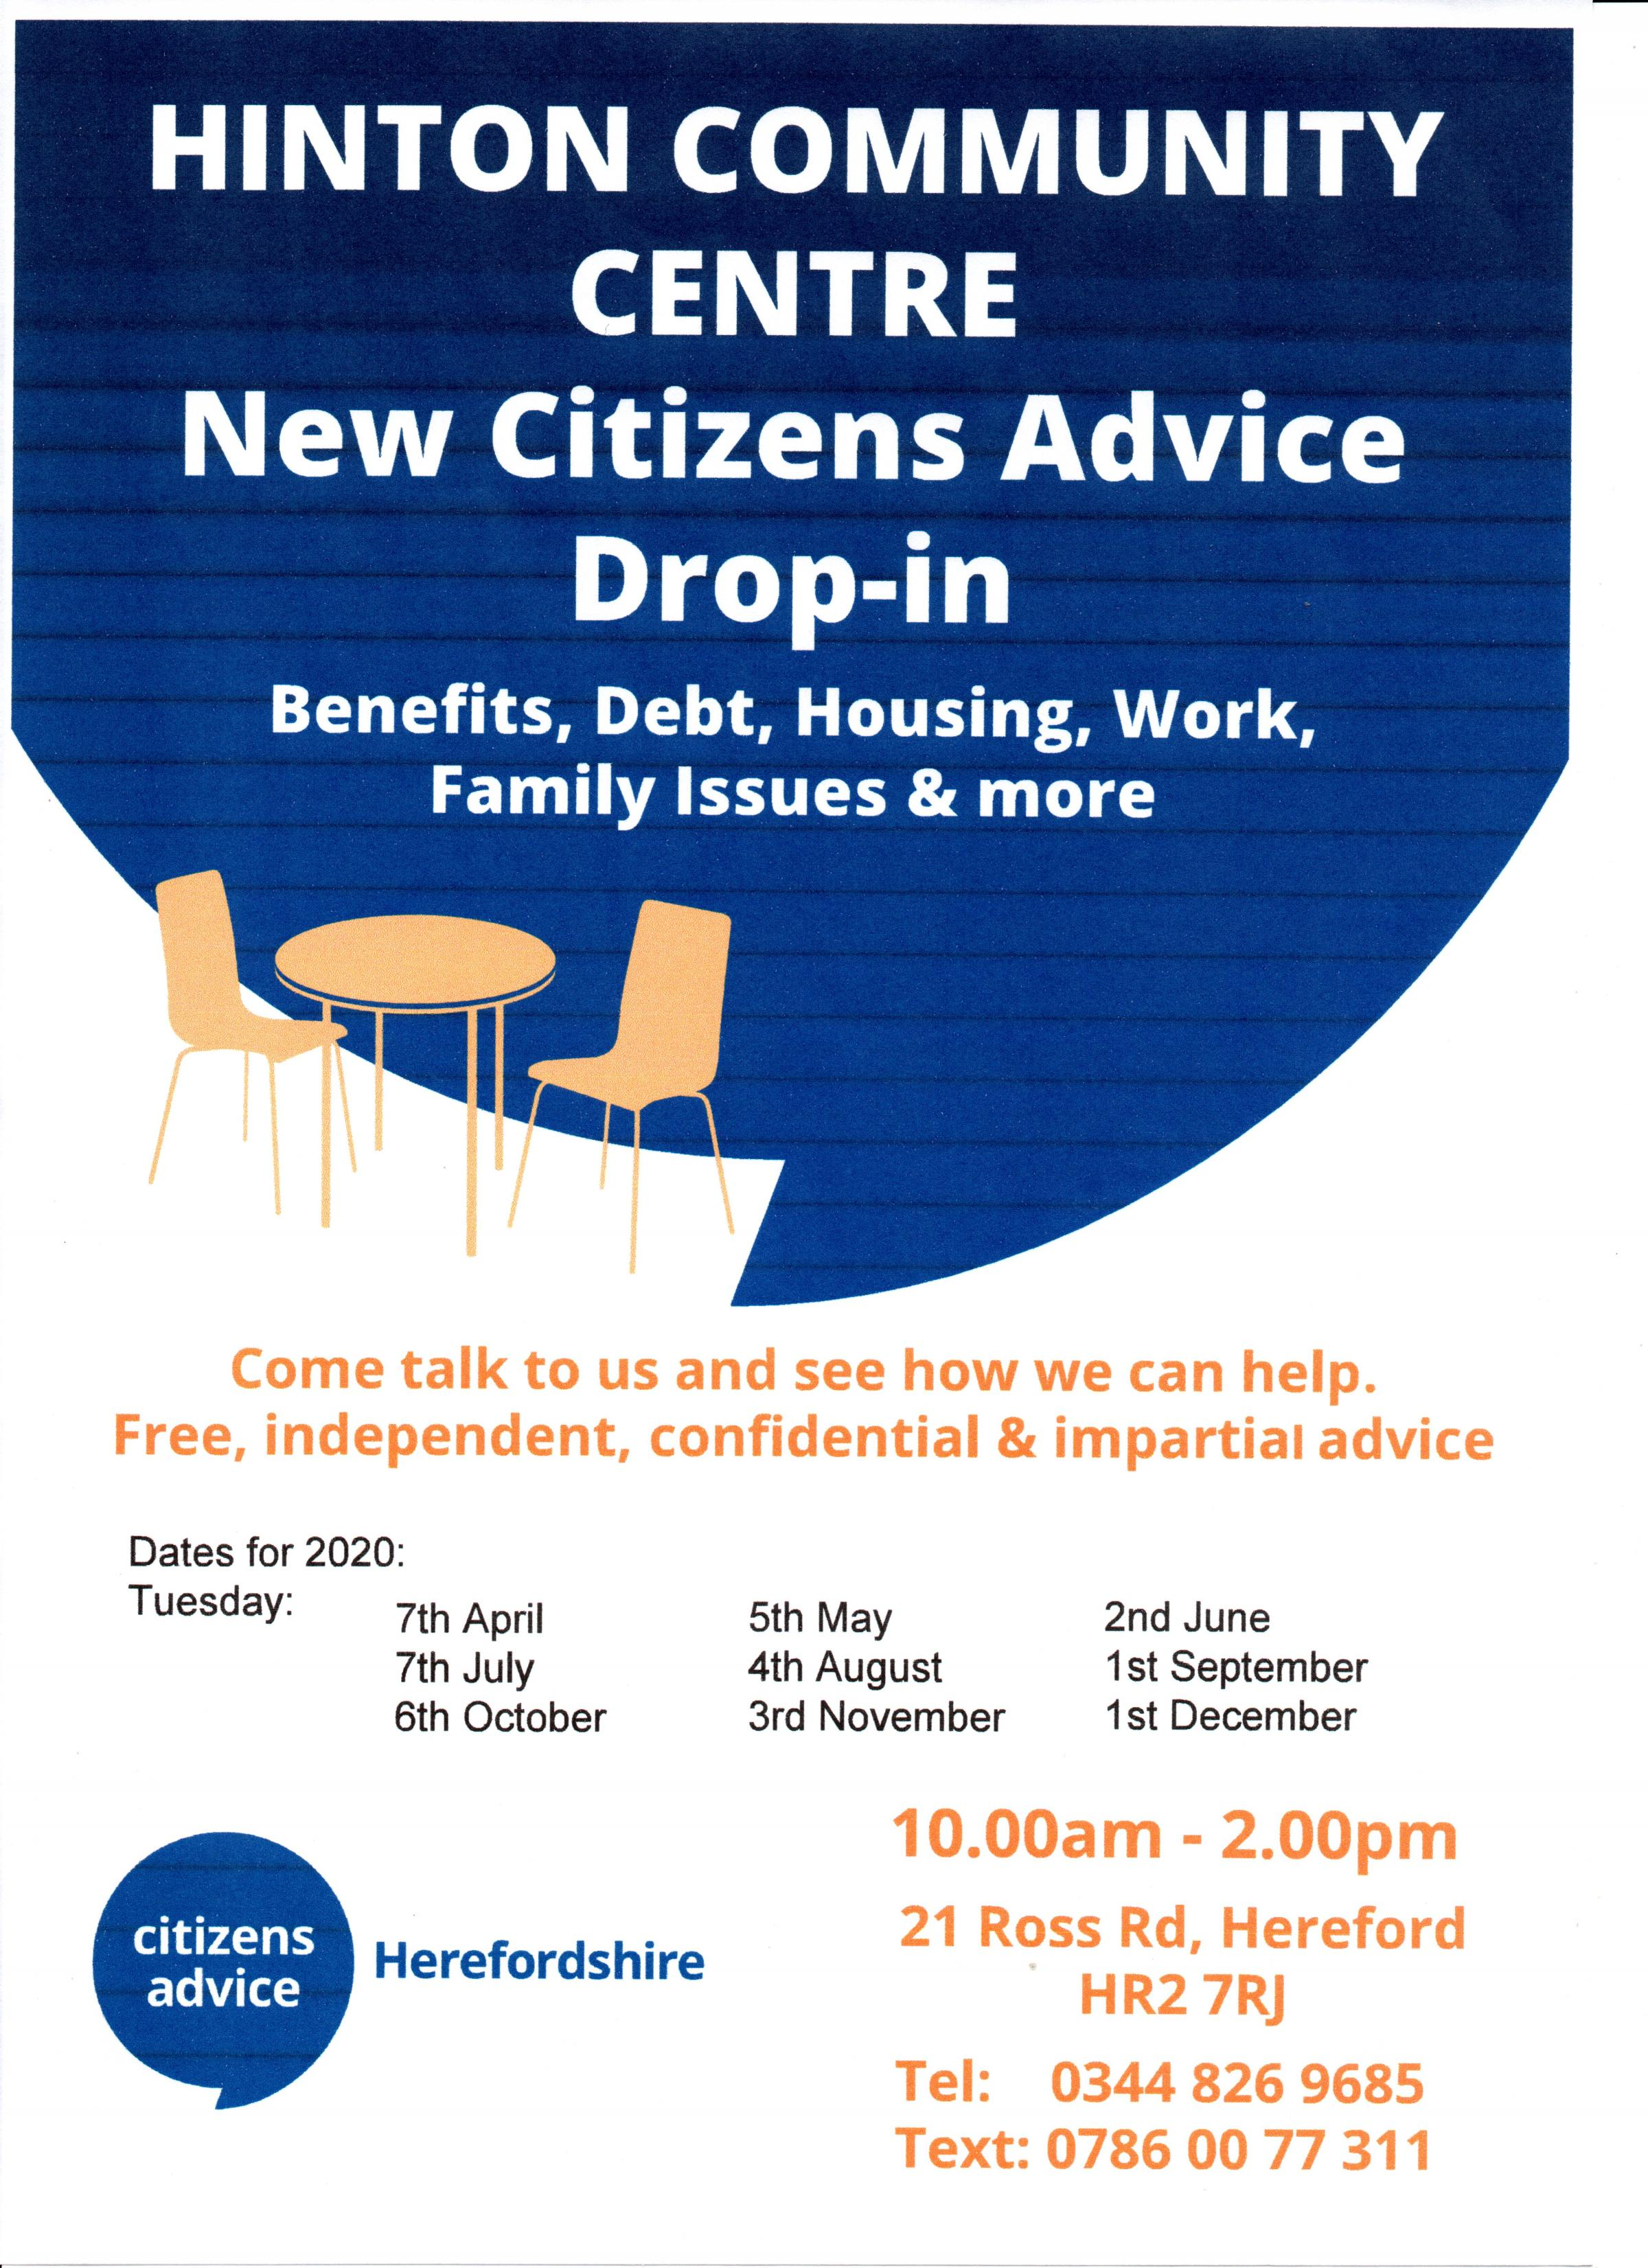 Citizens Advice First Tuesday of Every Month Drop-in Sessions at the Hinton Community Centre